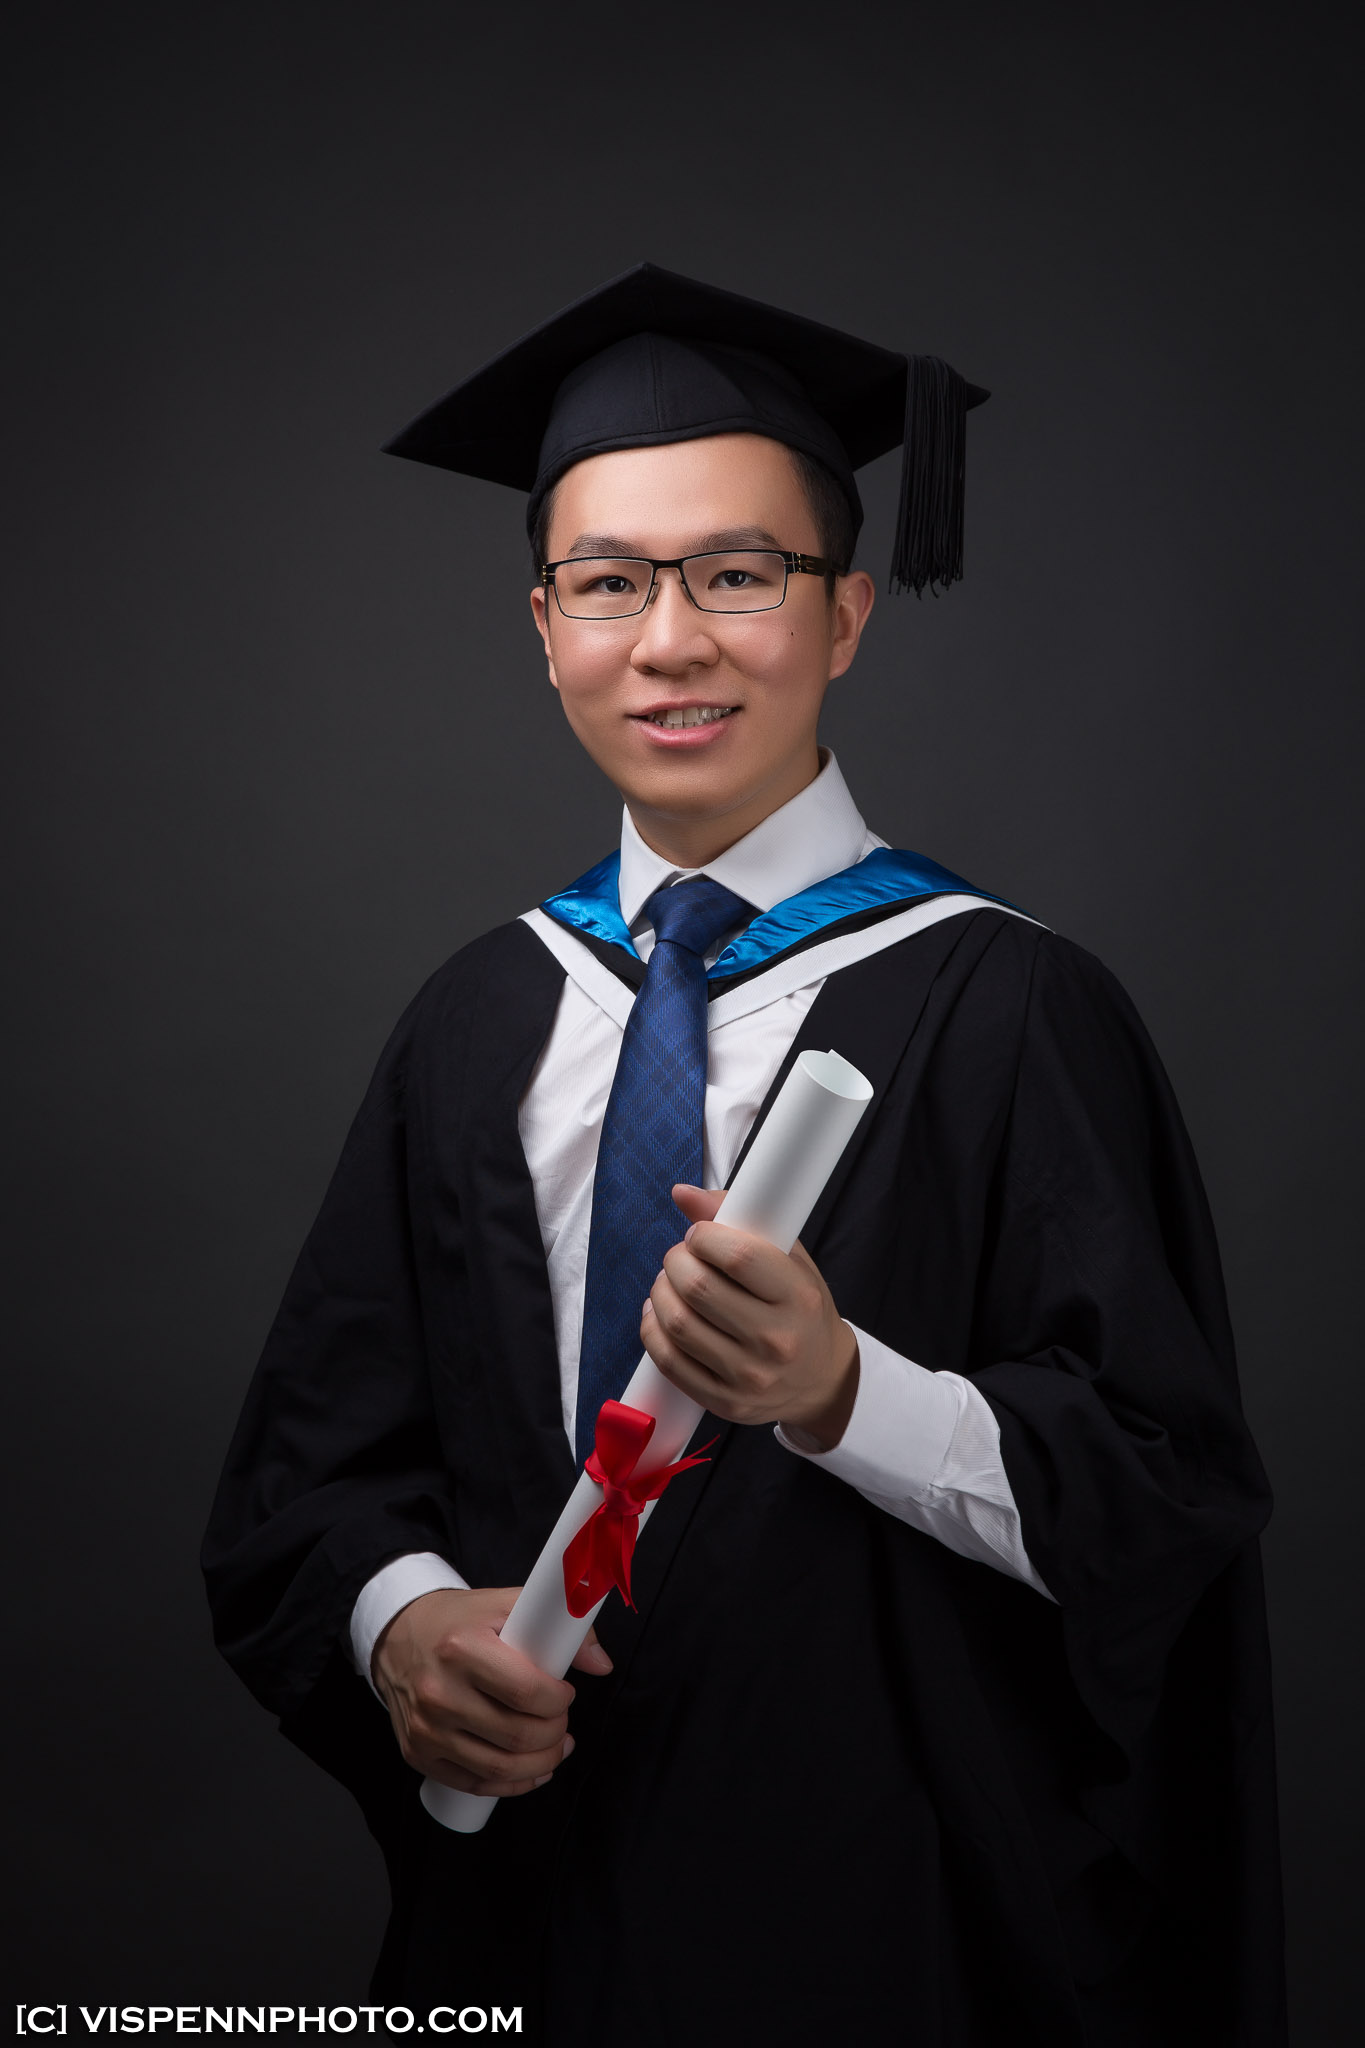 Headshot Melbourne Graduation Photoshoot VISPENN 墨尔本 毕业照 毕业摄影 1R9A7924